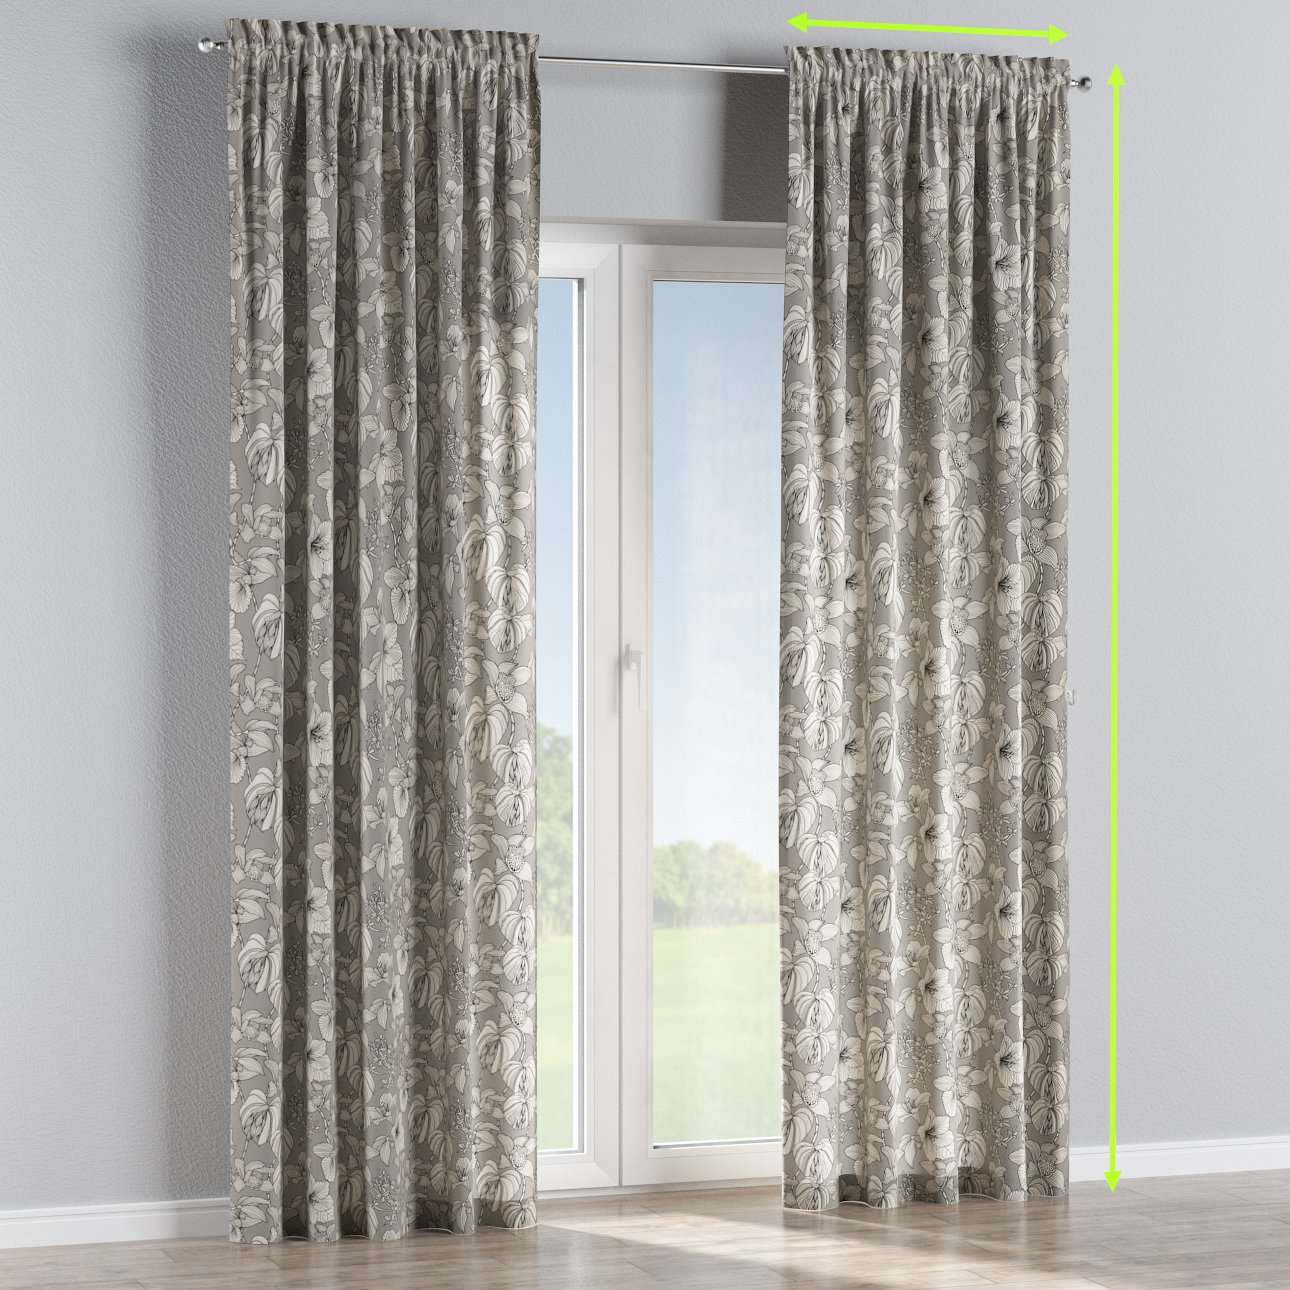 Slot and frill lined curtains in collection Brooklyn, fabric: 137-80